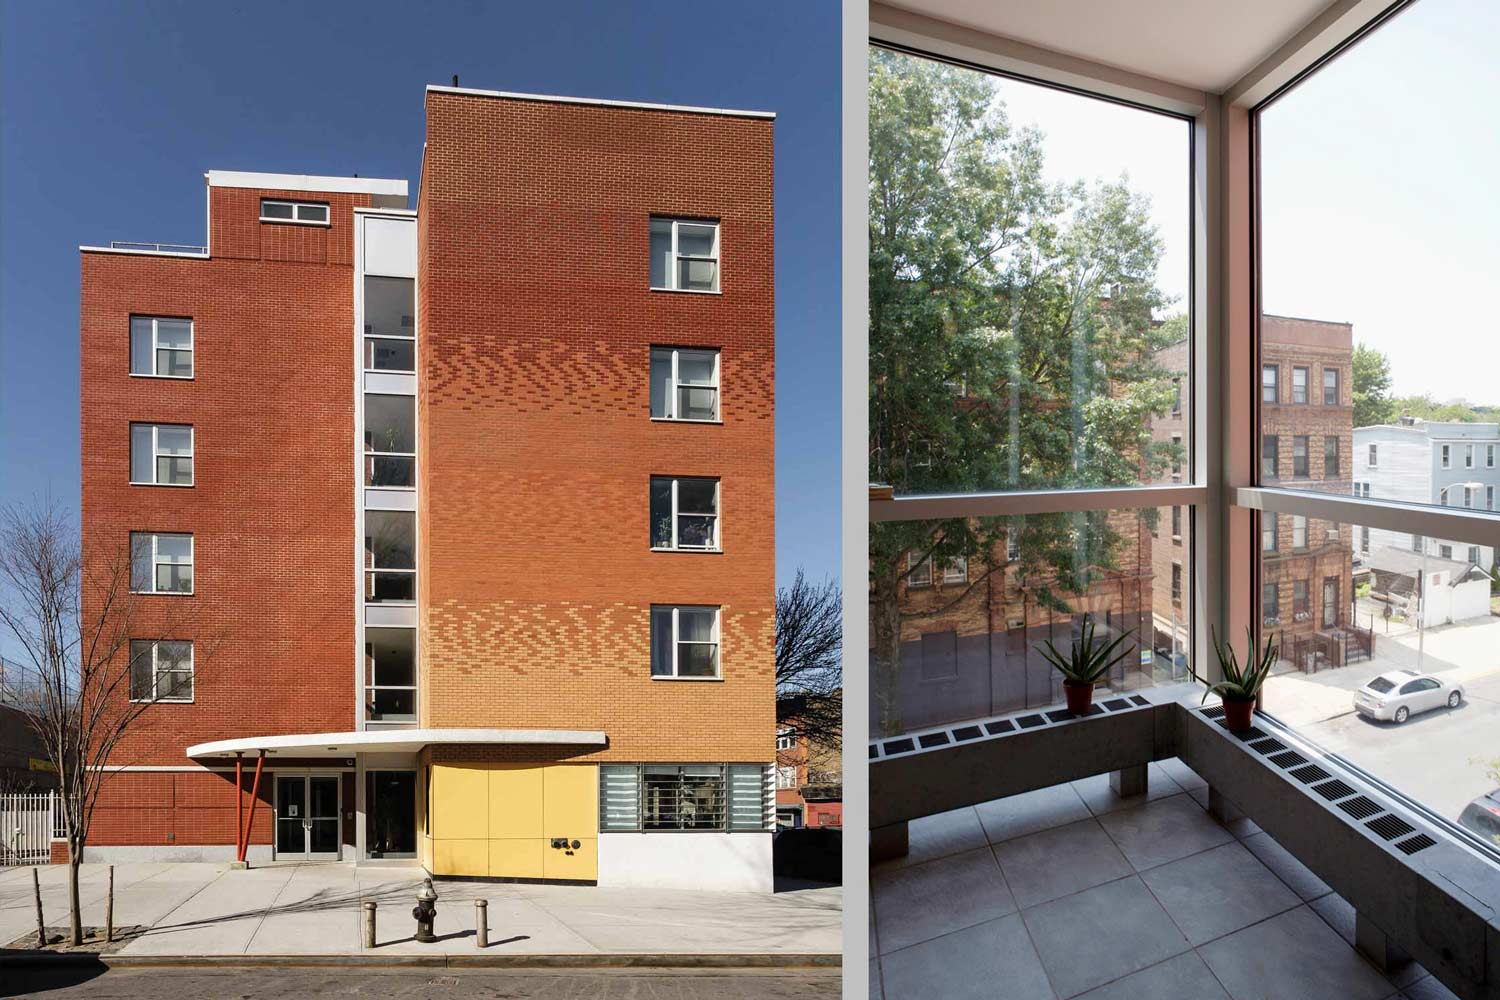 The overall building design maximizes the use of natural light, while architectural screens mitigate solar overheating.